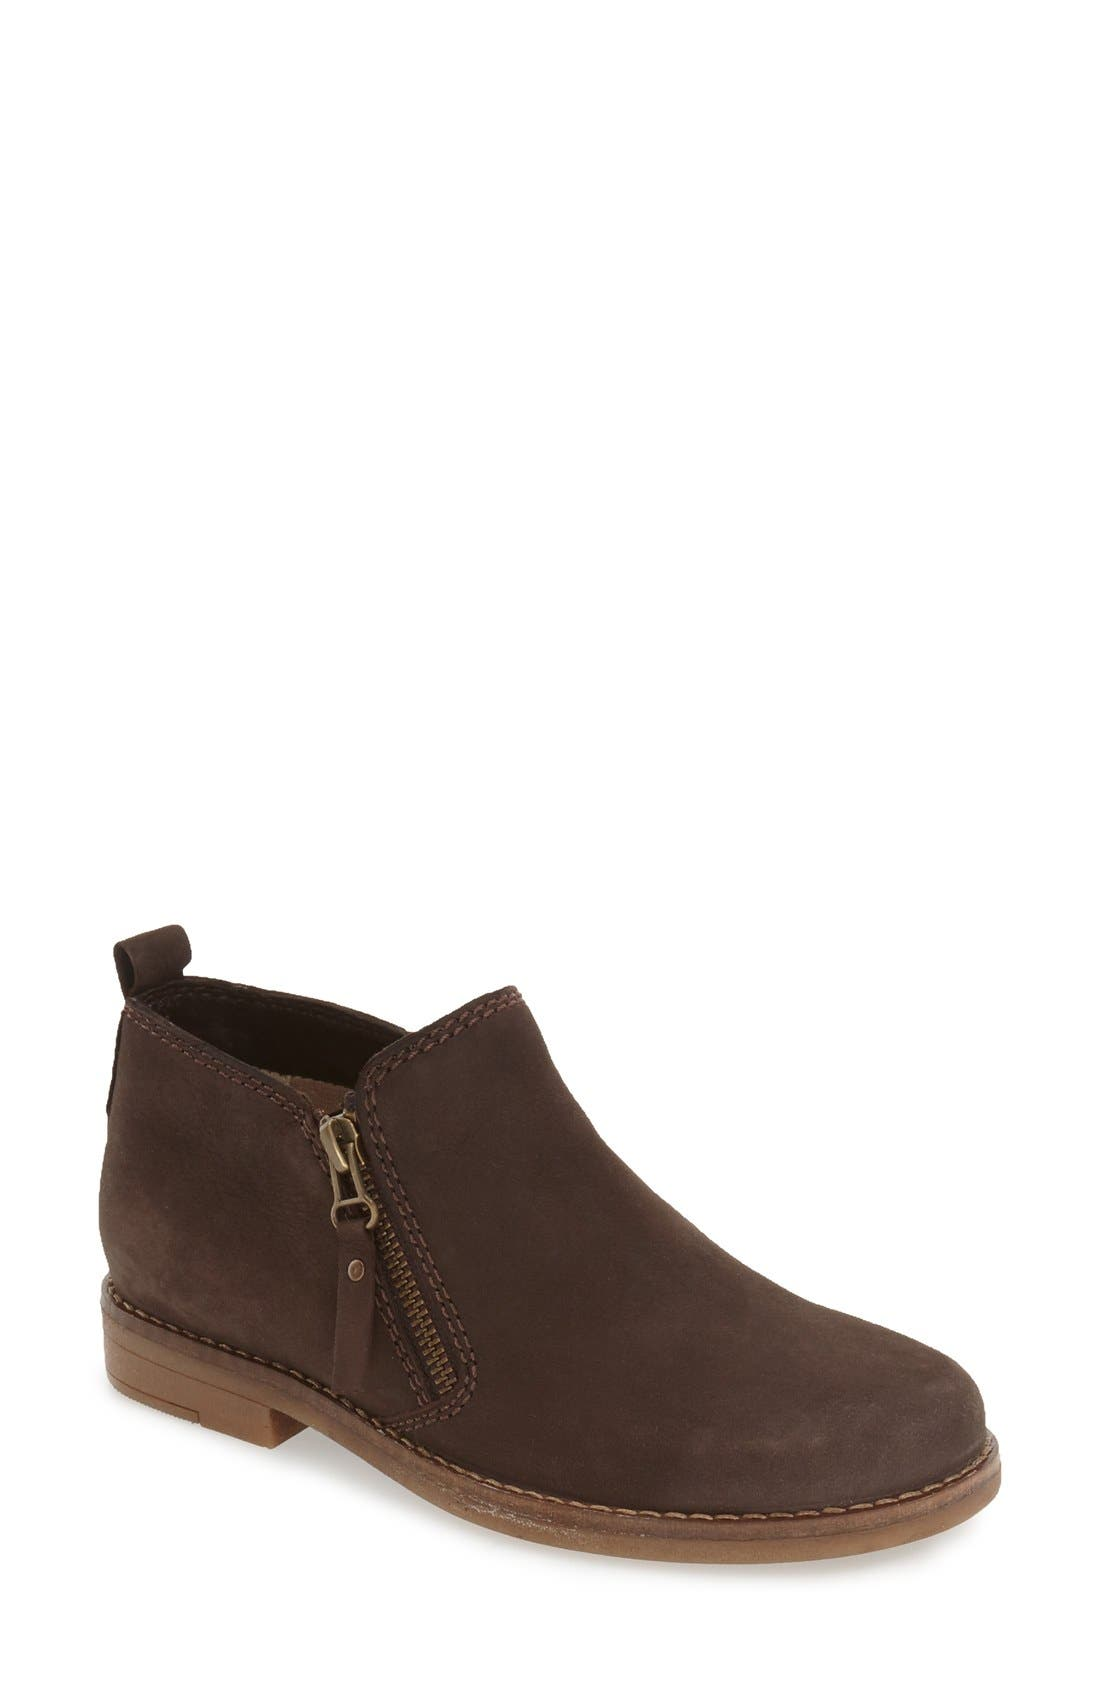 'Mazin Cayto' Bootie,                             Main thumbnail 1, color,                             Brown Nubuck Leather